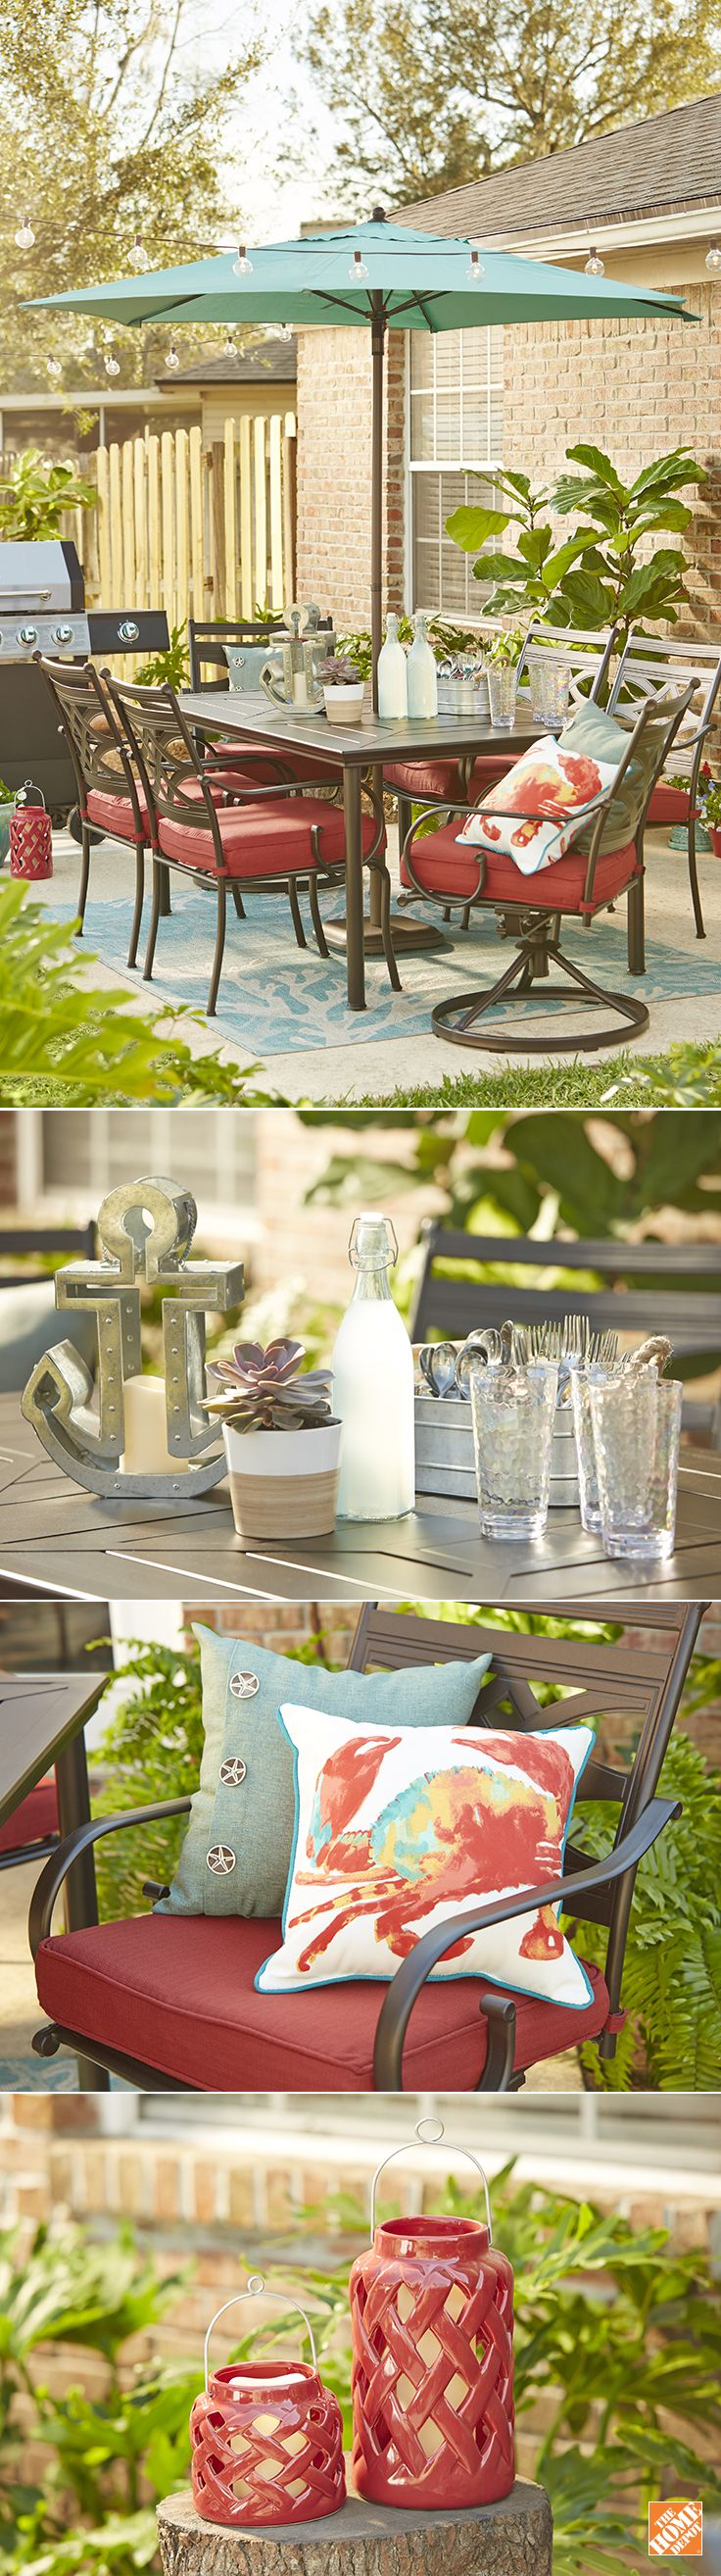 Patio Accessories Achieve Colorful Coastal Look